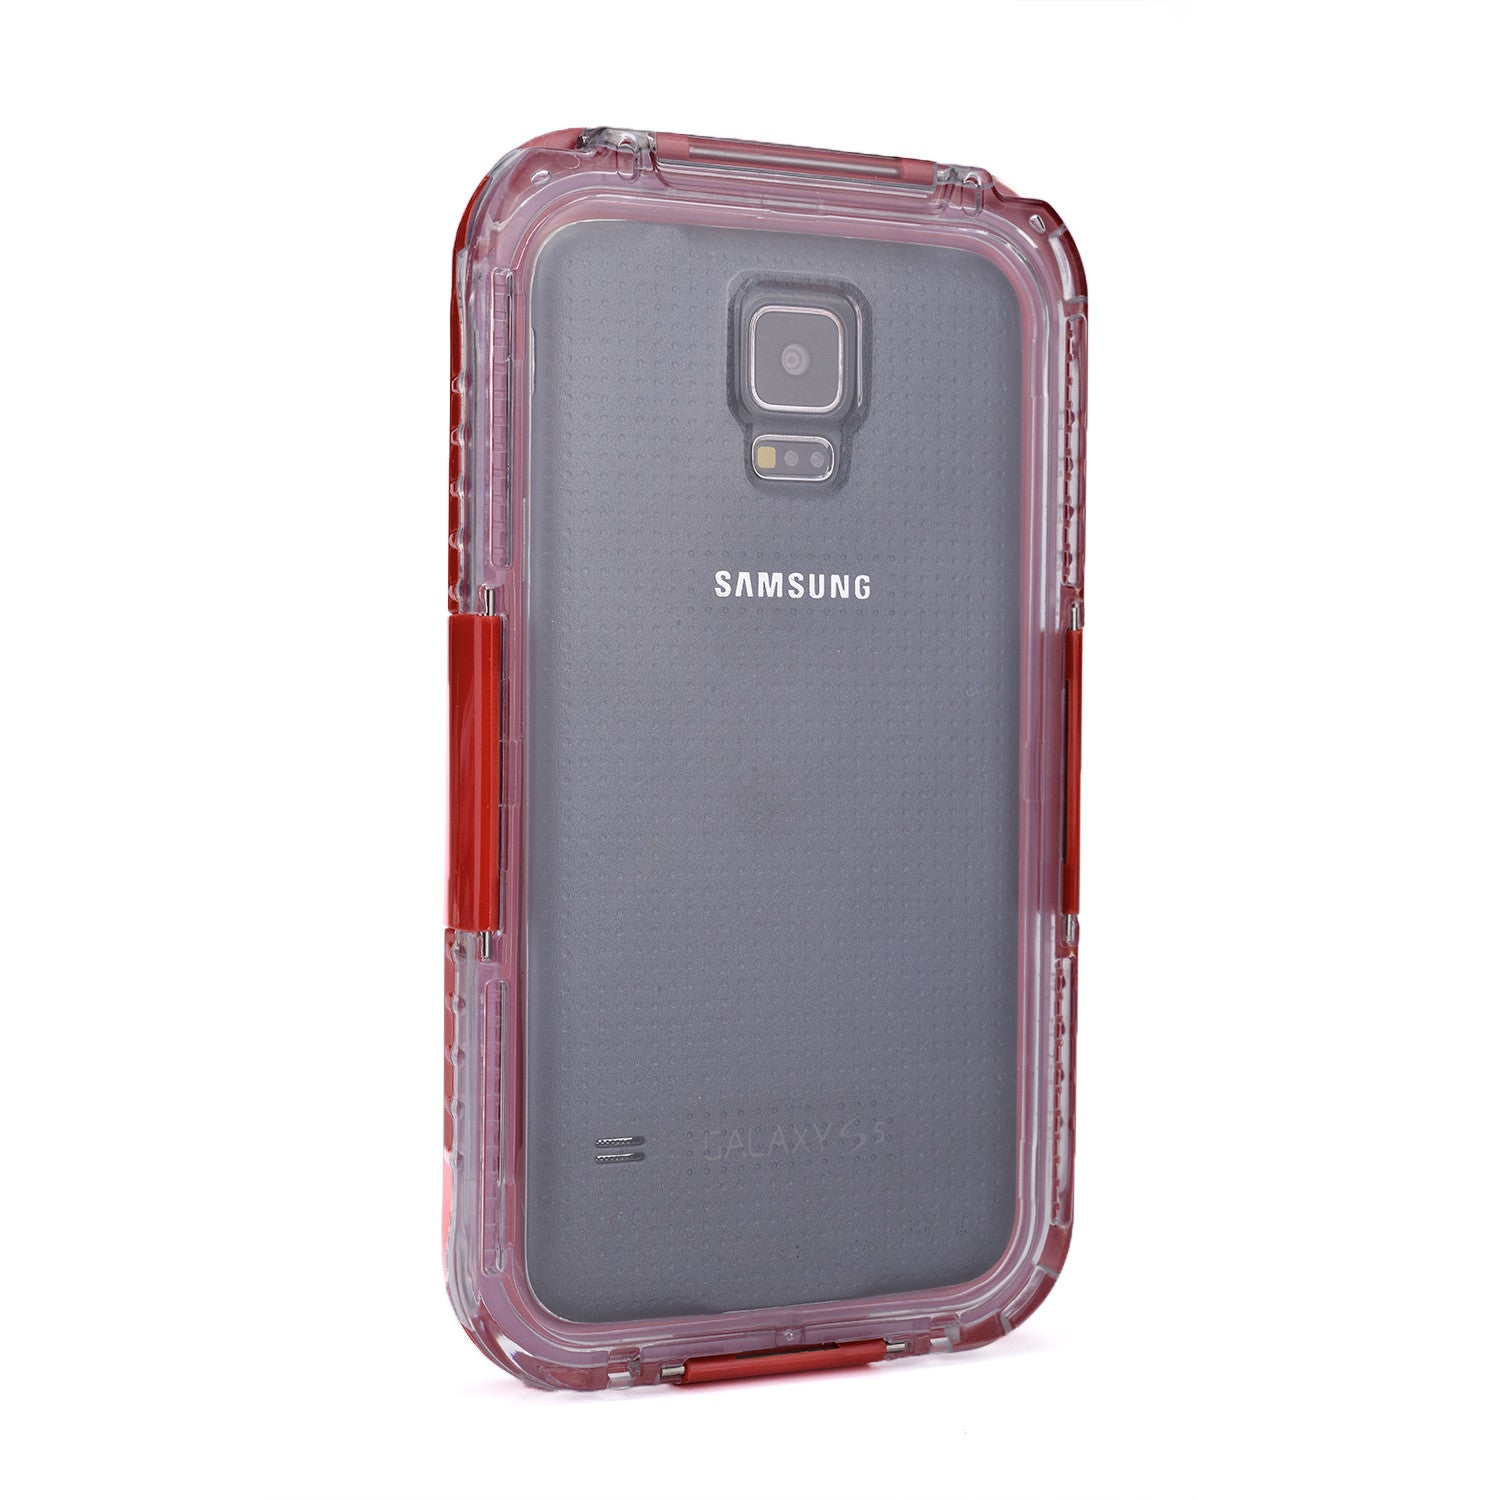 Cooper dive rugged waterproof case review specs and buy online cooper cases - Samsung dive mobile tracker ...